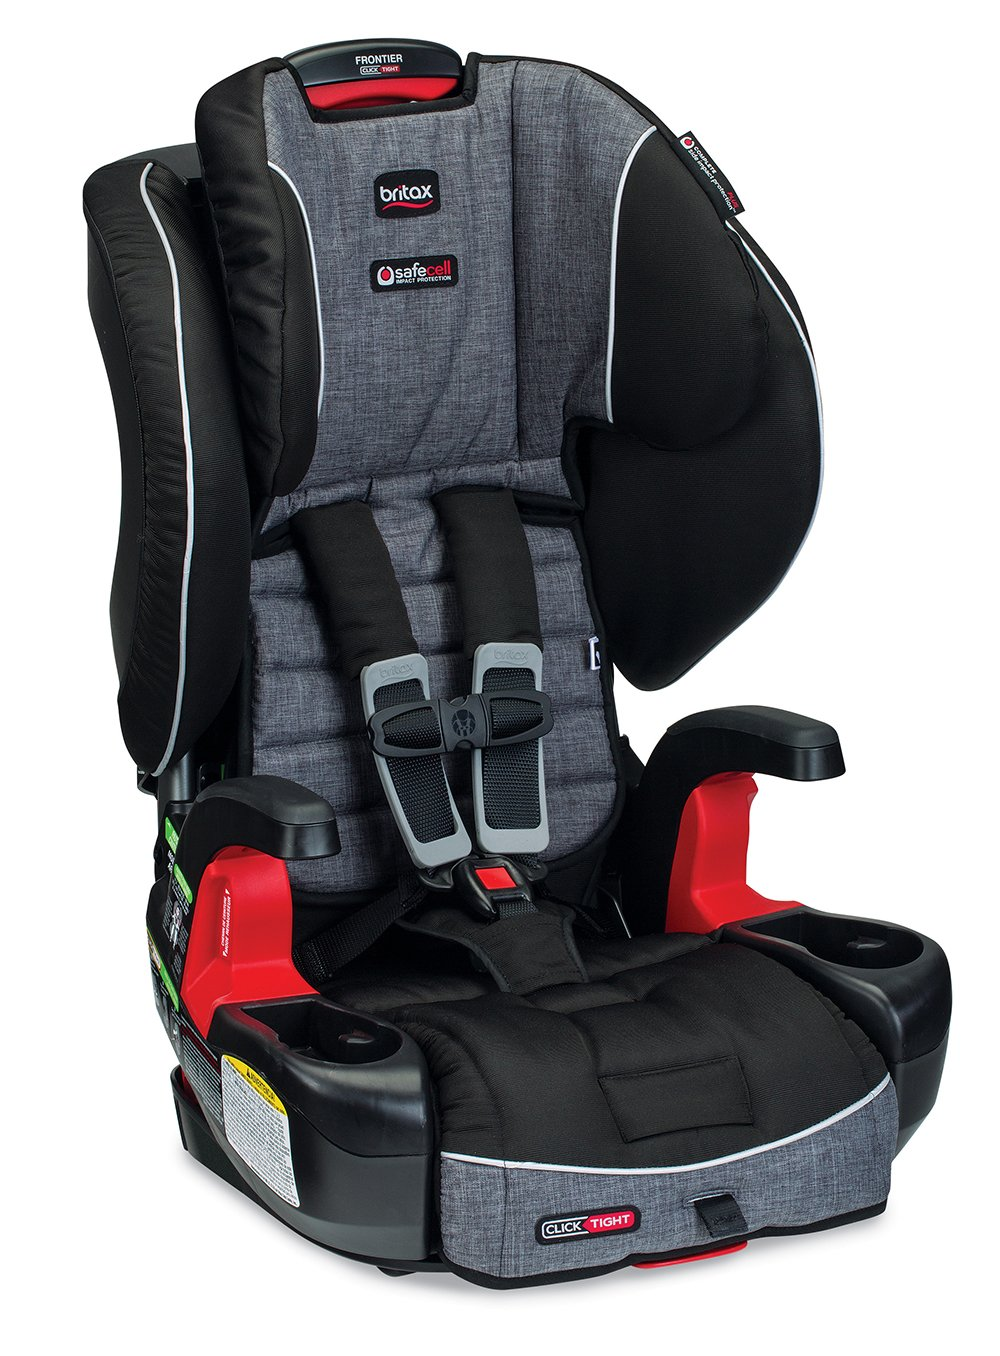 galleon britax g1 1 frontier clicktight combination harness 2 booster car seat vibe